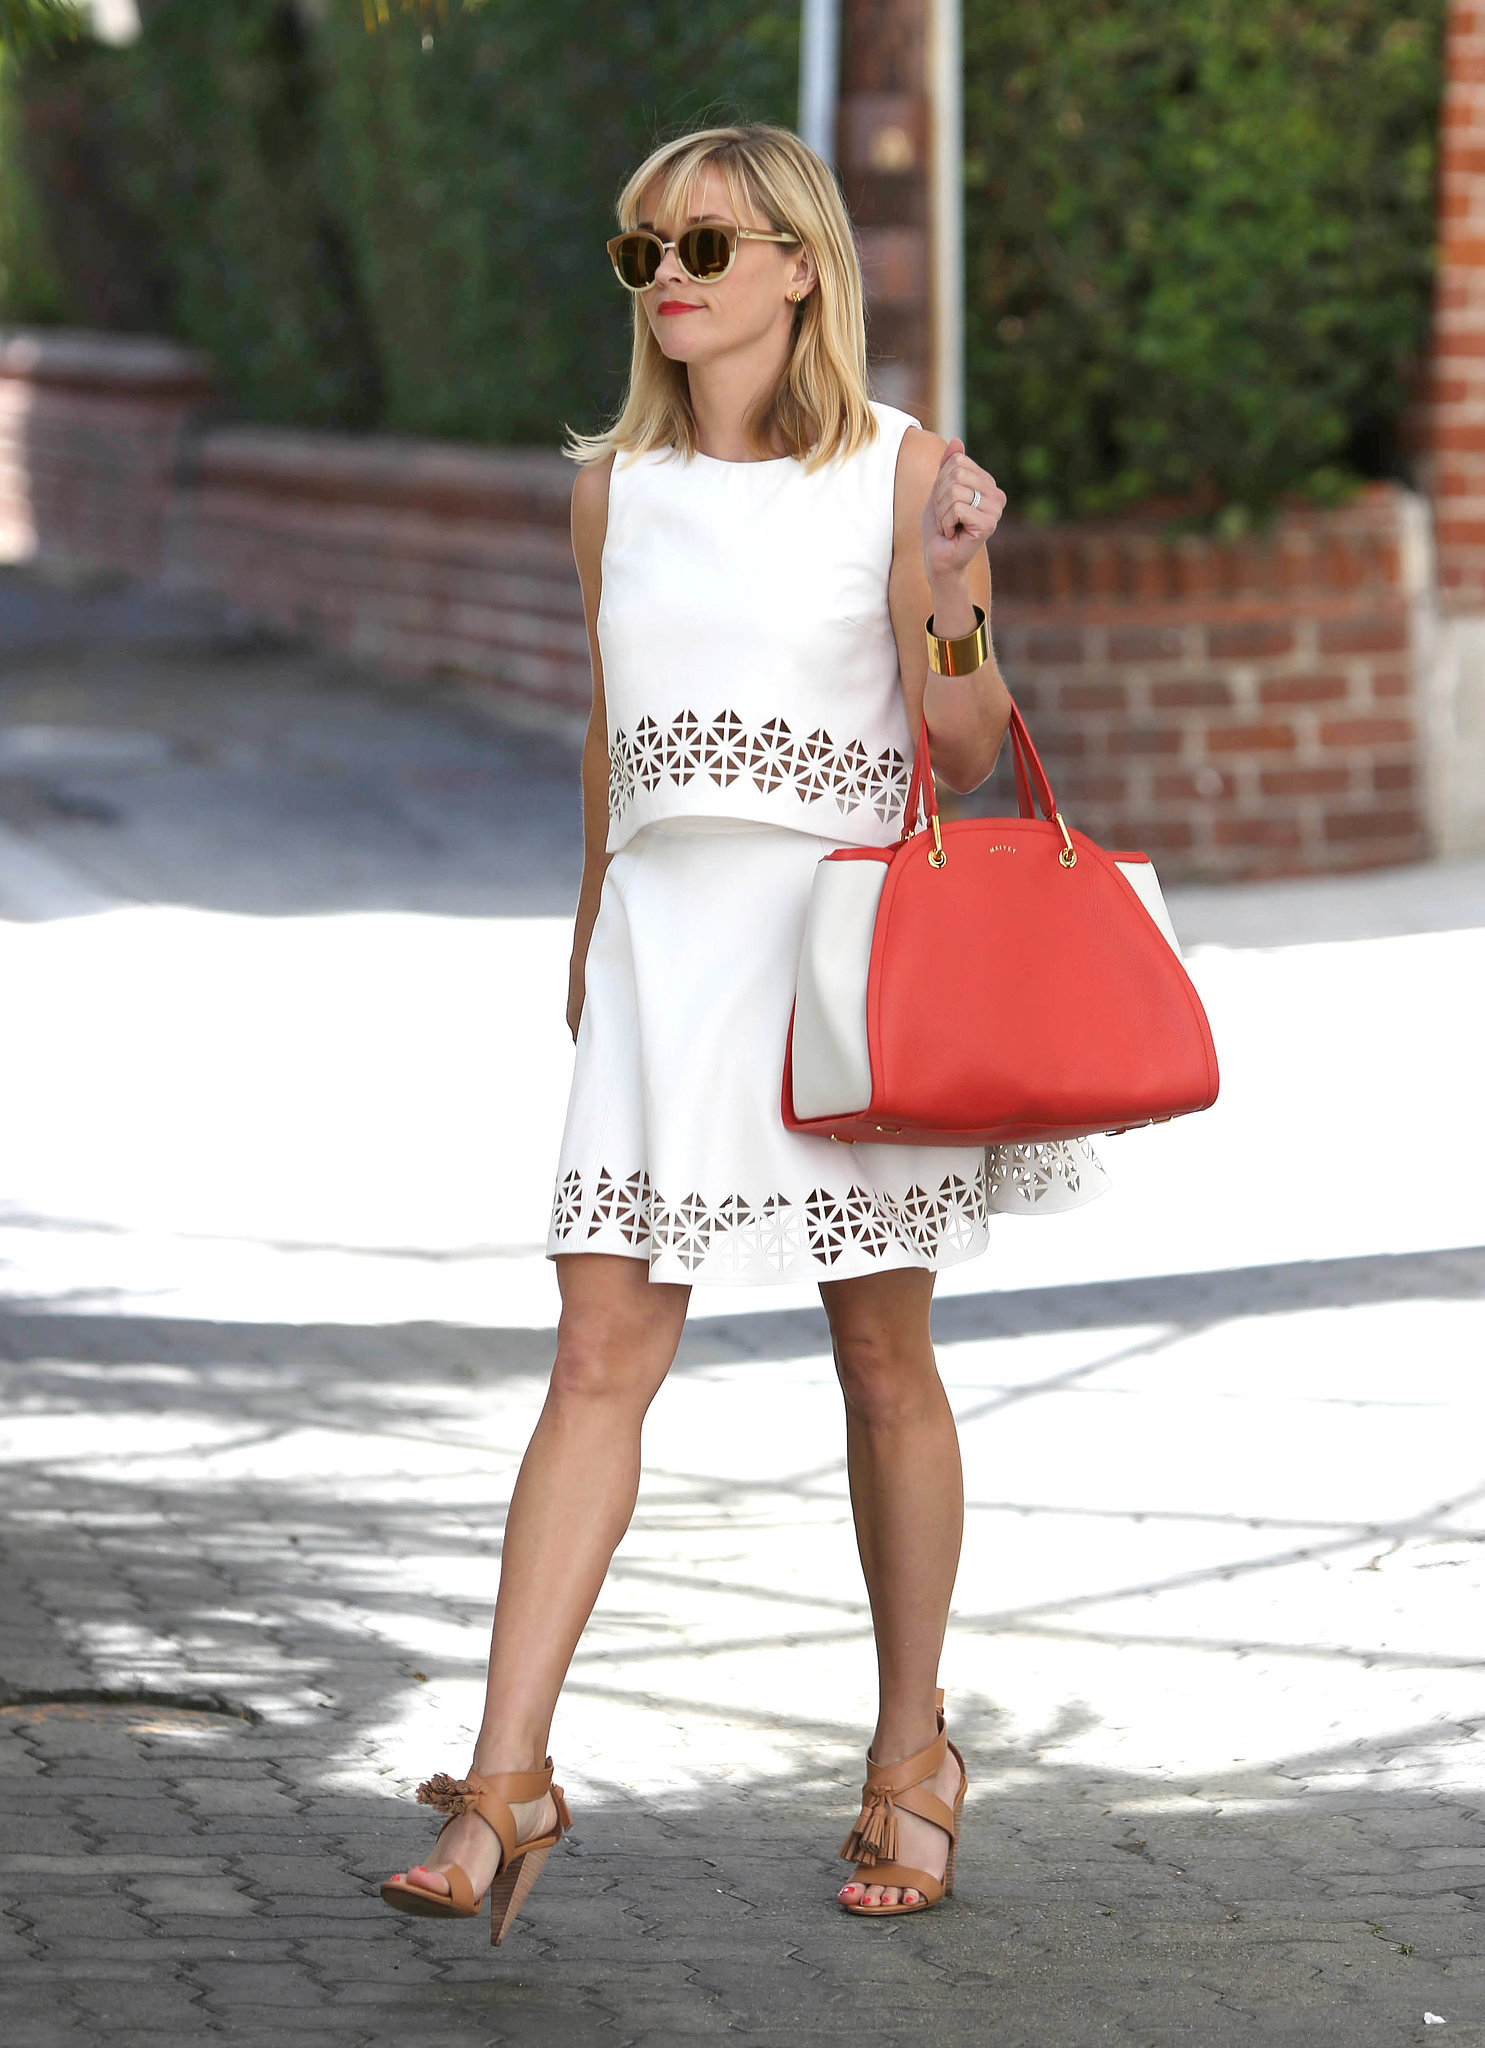 Reese slipped on her Monica Rose for Lovers + Friends two-piece number and then piled on the accessories. With two-tone Tory Burch sunglasses; her Maiyet tote; tan, tassel-embellished heels; and a simple bangle, she's nailed the sophisticated prep look. The playful vibe her flouncy skirt's giving off is just the icing on the cake. Source: Getty / SMXRF/Star Max